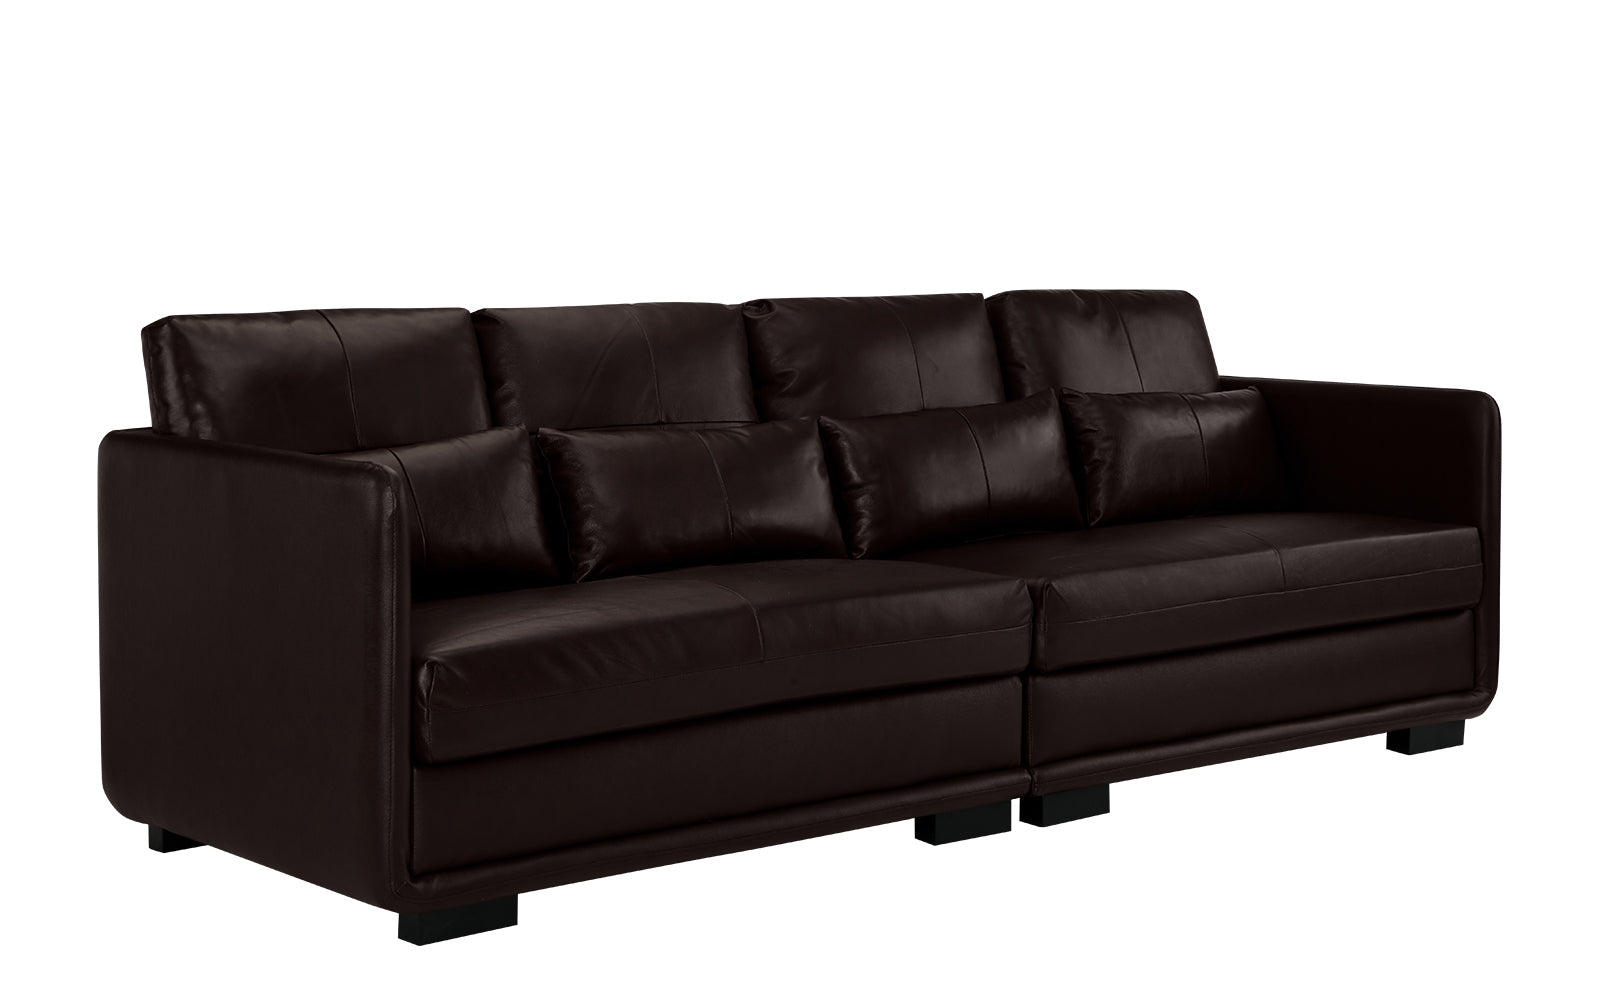 Nova Elegant Convertible Leather Sofa